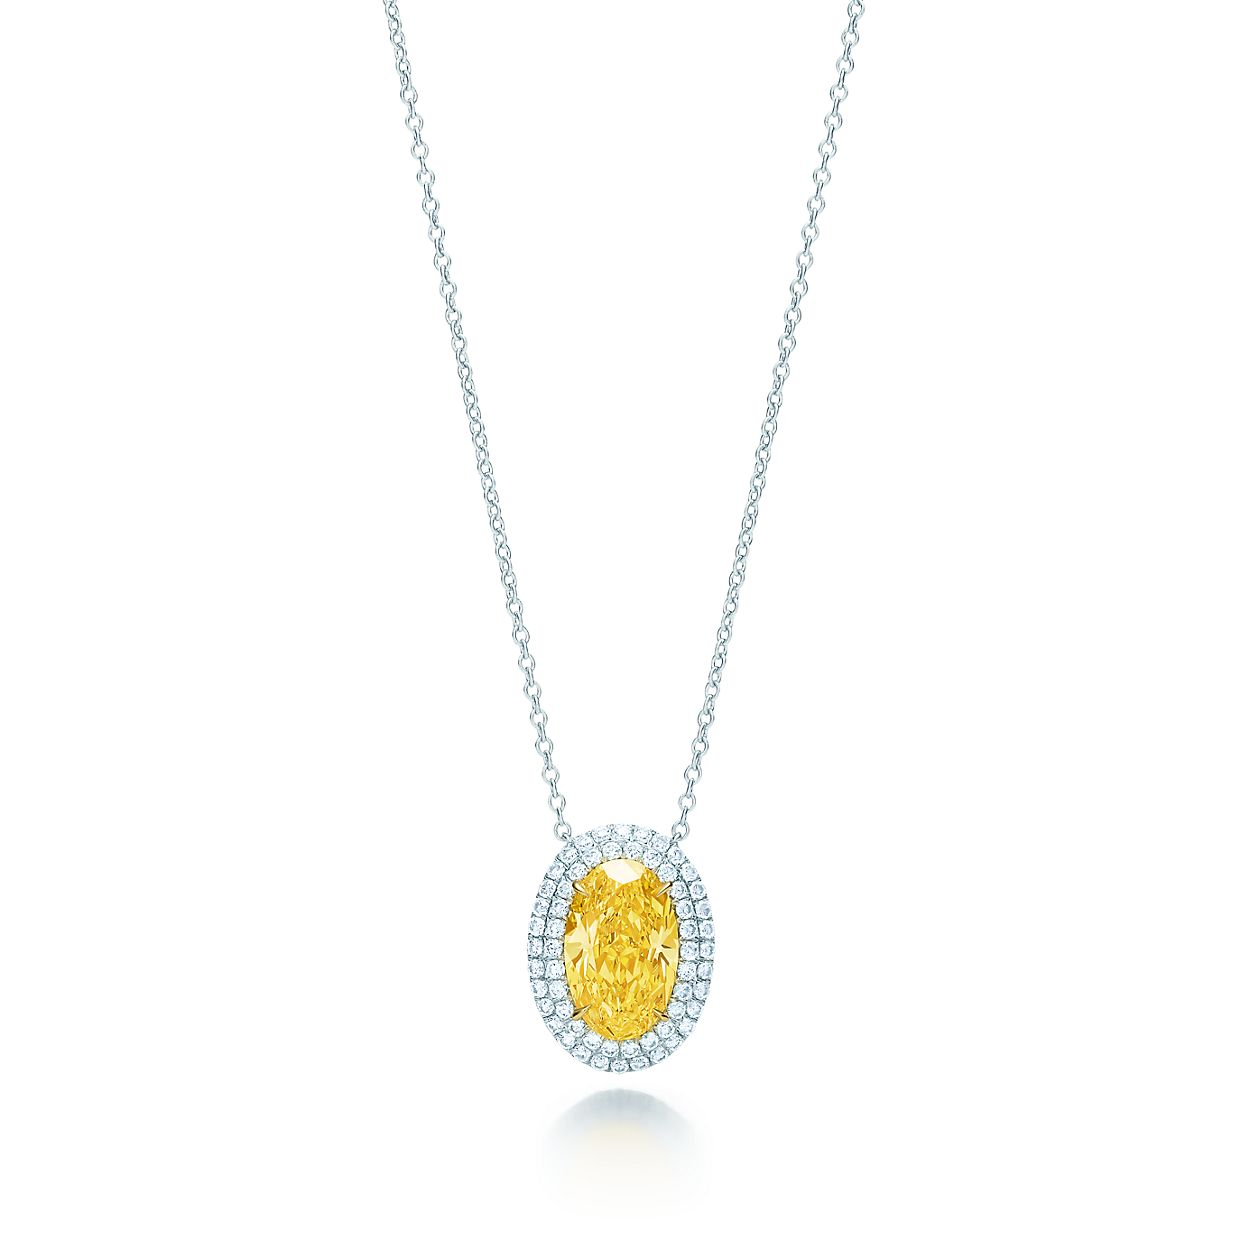 Tiffany soleste yellow diamond pendant in platinum and 18k gold tiffany solesteyellow diamond pendant mozeypictures Image collections